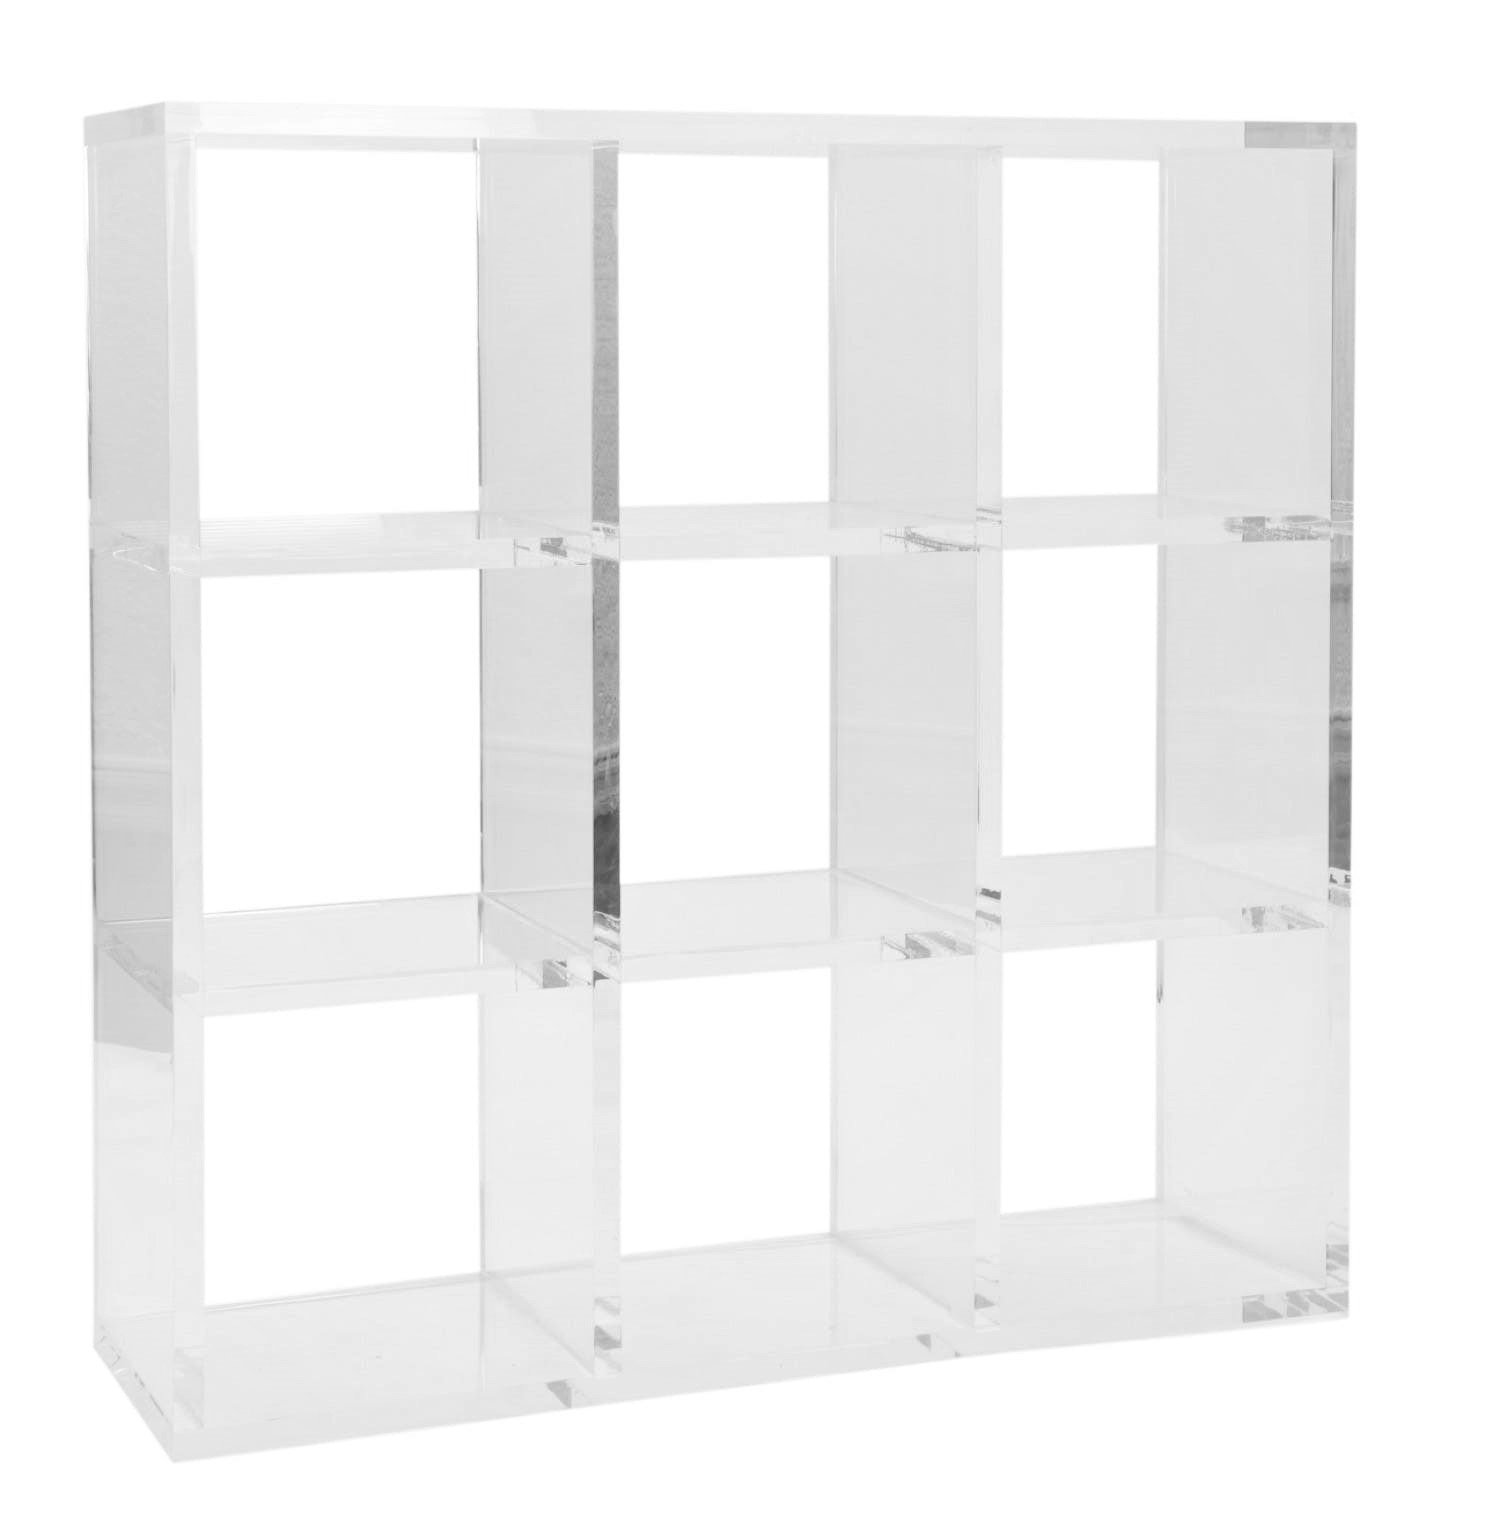 together also australia bookcase clear auckland in of conjunction with home size plus full acrylic bookshelf shelves